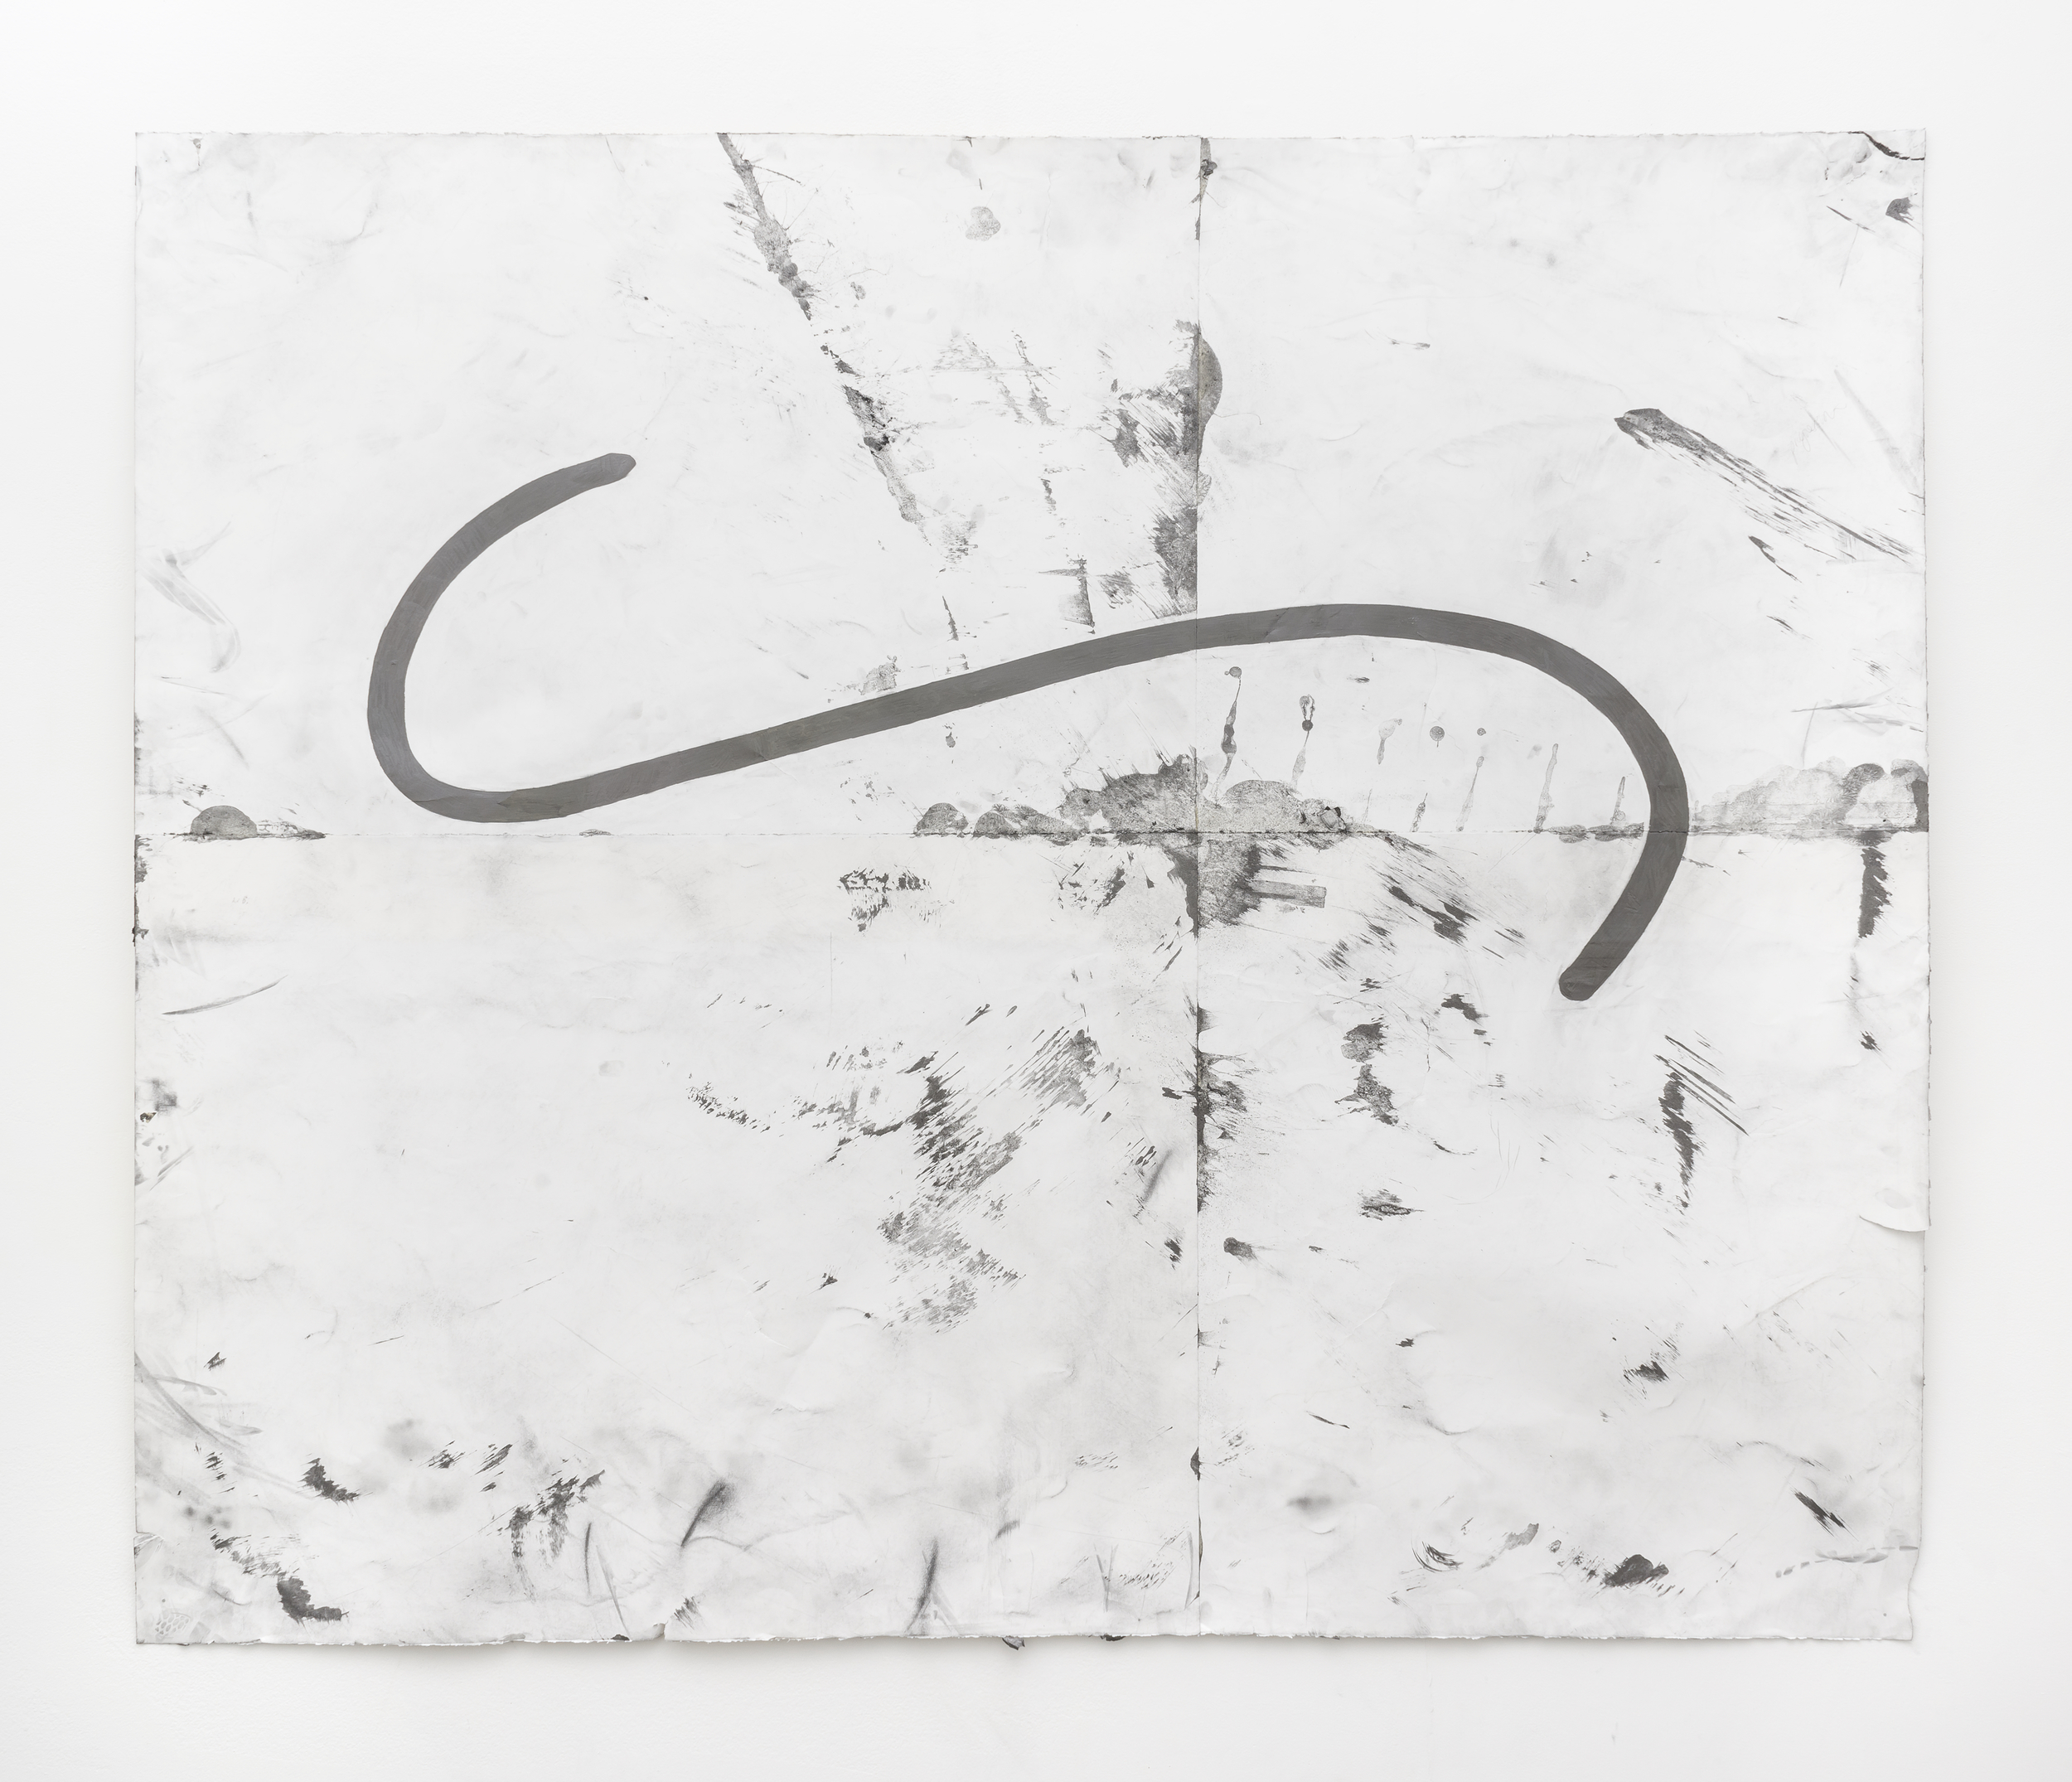 Tony Lewis  Progression  2014 Pencil, graphite powder, and tape on paper 71 ½h x 83 ¾w in TL246